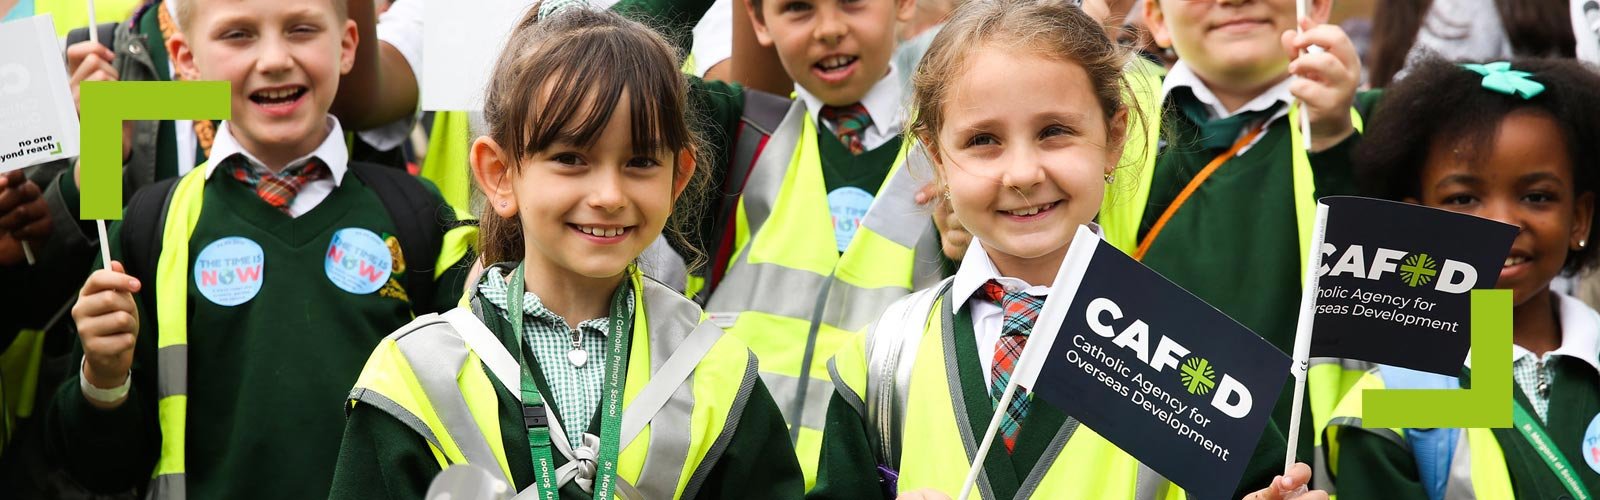 School children wave CAFOD flags at the Time is Now mass lobby on climate change.